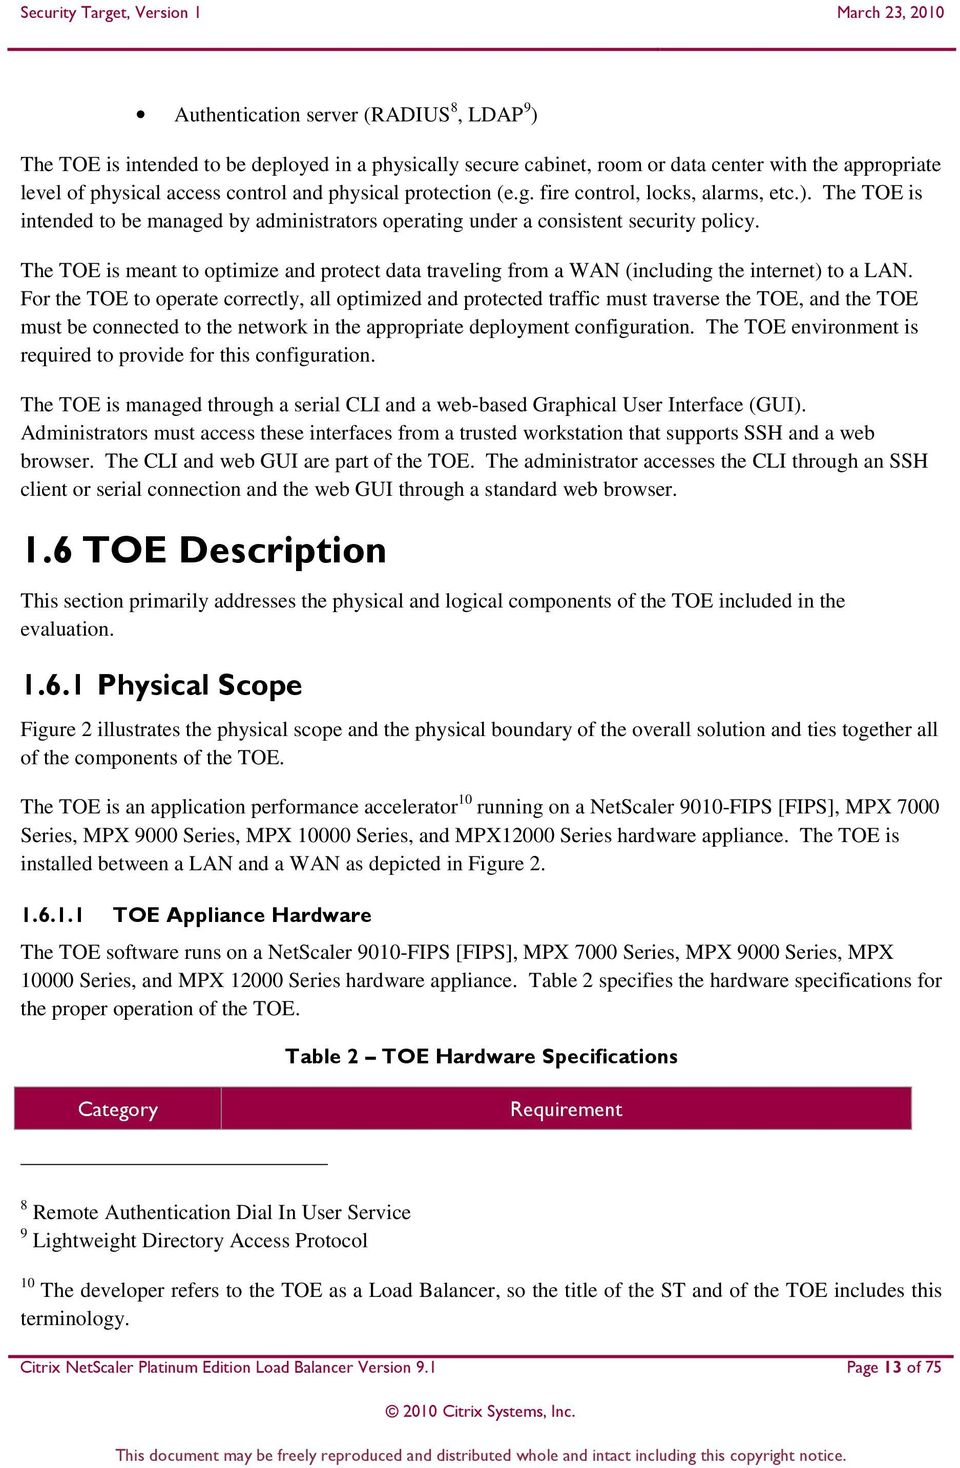 The TOE is meant to optimize and protect data traveling from a WAN (including the internet) to a LAN.